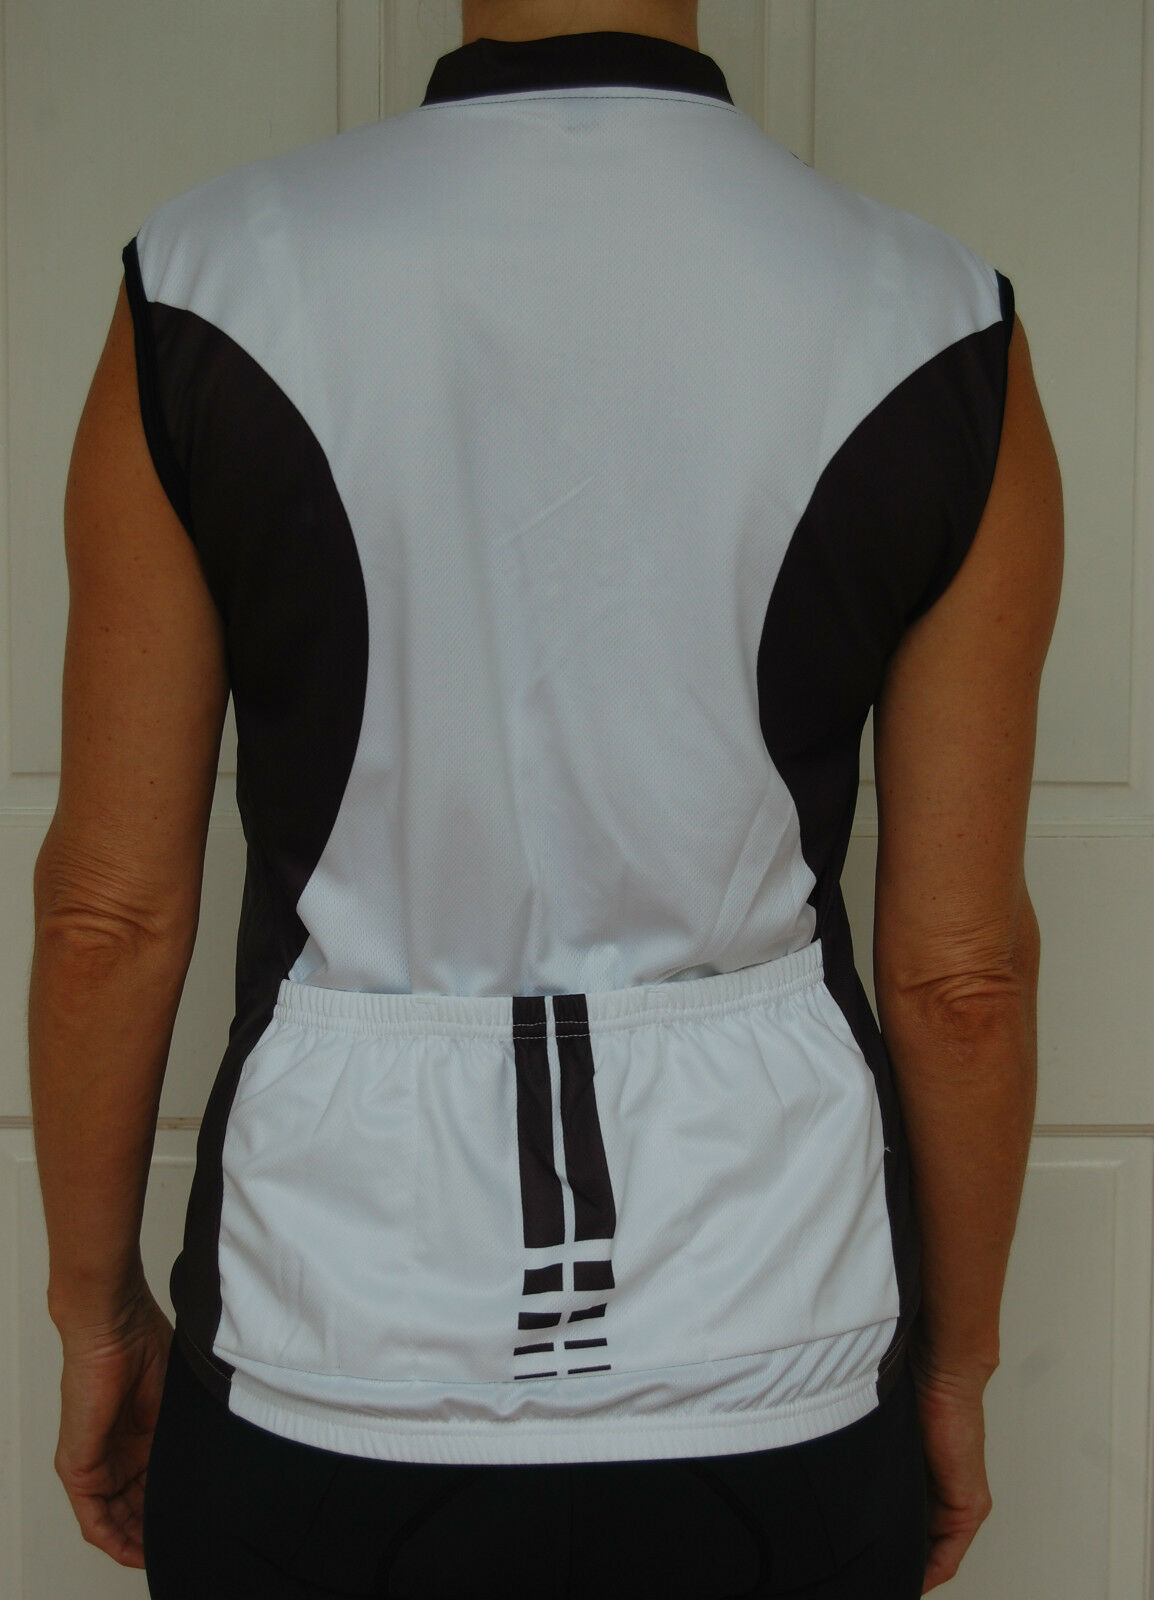 Cycling Sport Clothing Jersey Unisex (Black & White)